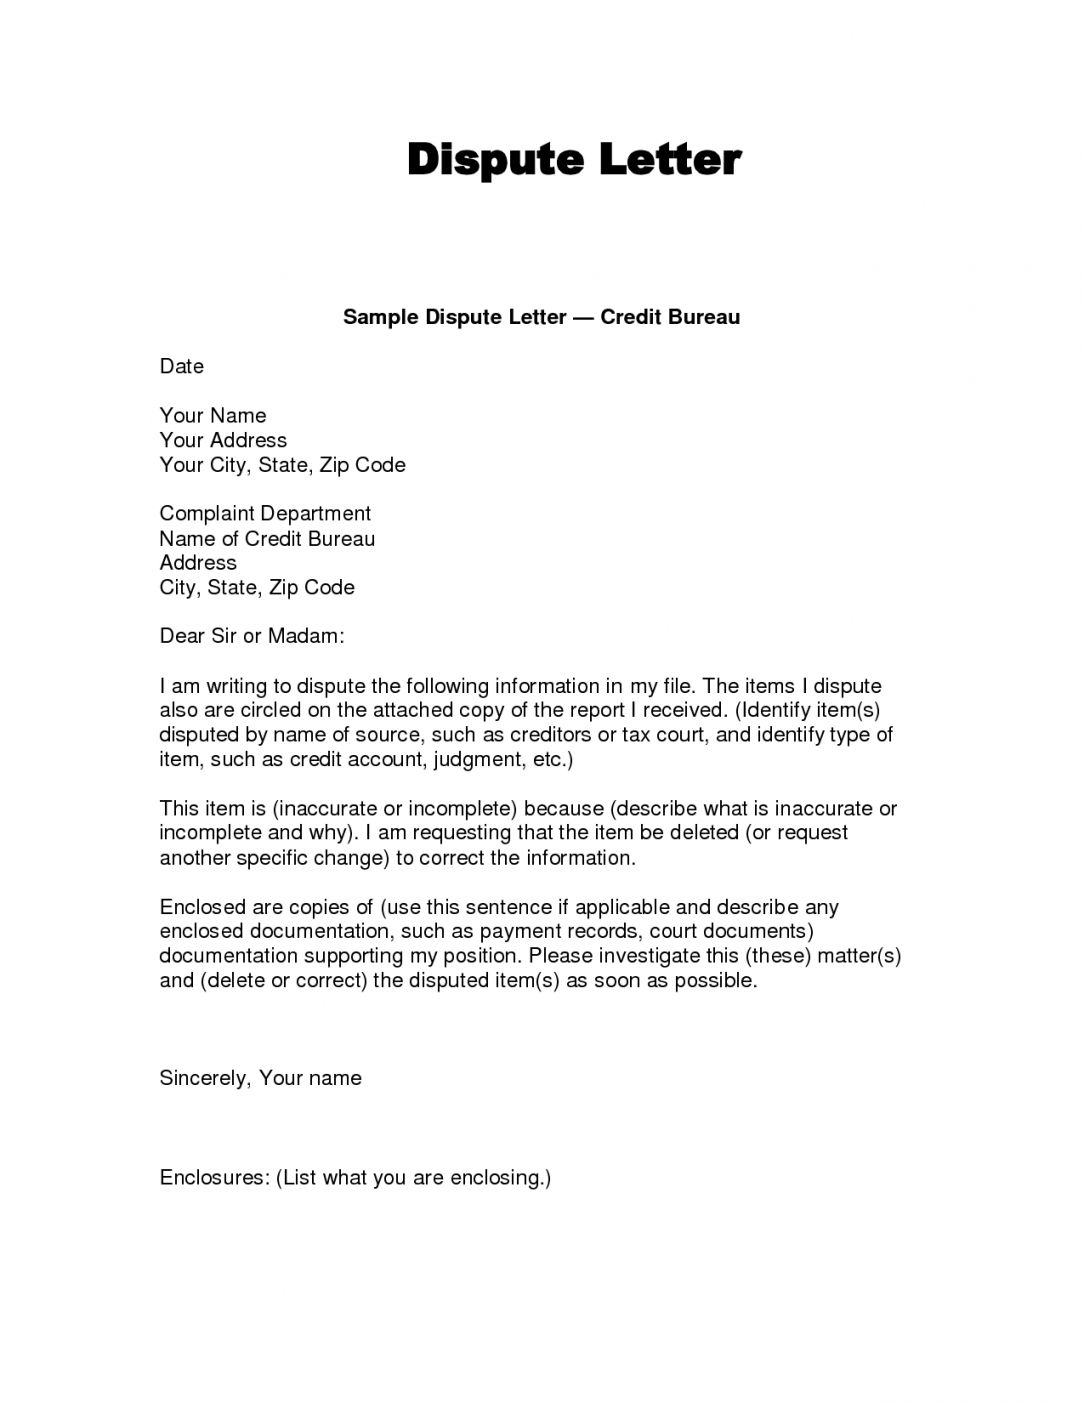 Explore Our Image of Credit Inquiry Removal Letter Template